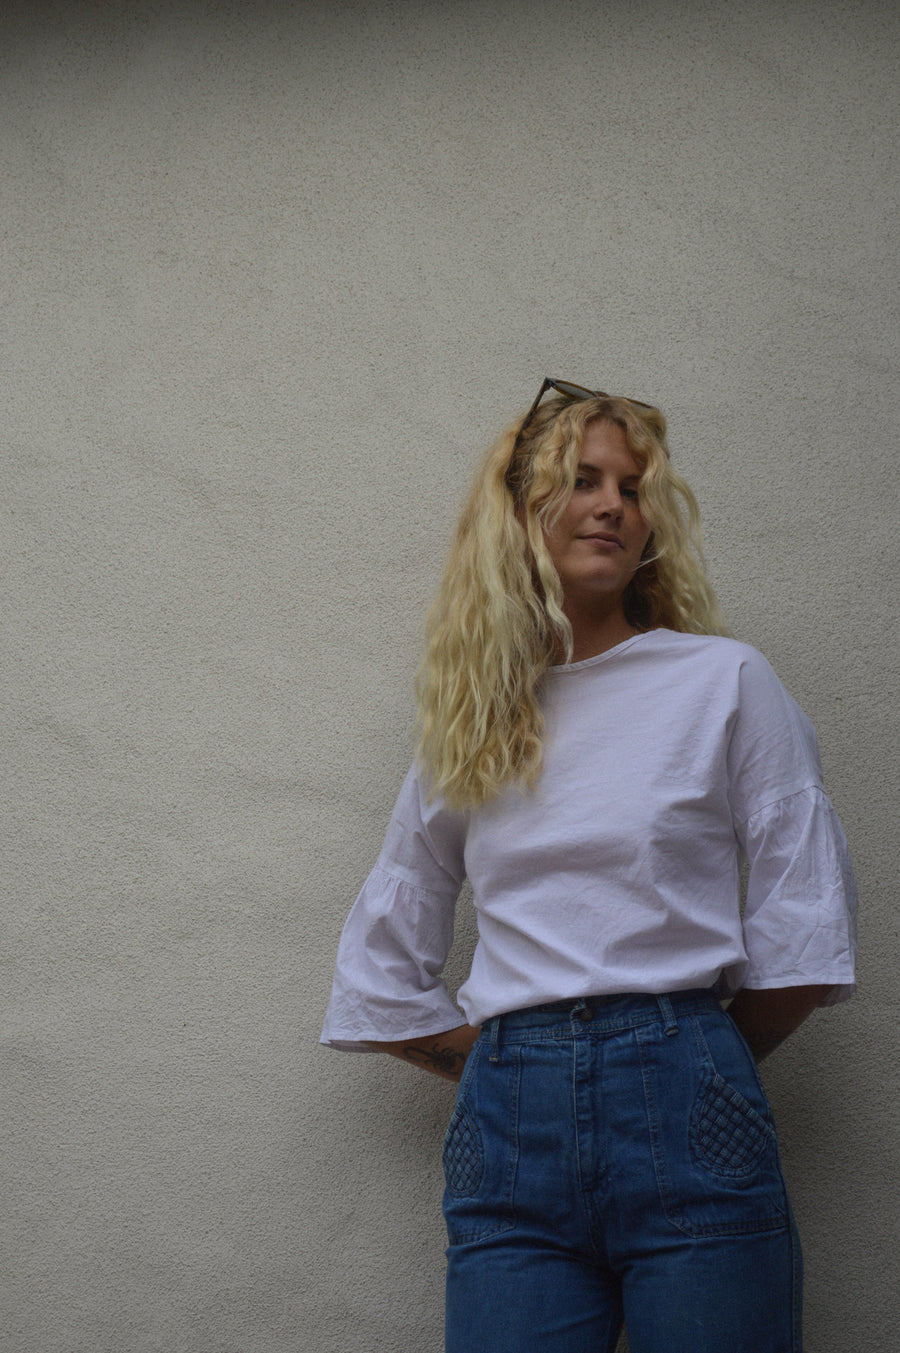 Vintage White Bell-Sleeve Blouse || Boho Clothing, Vintage Clothing, Aesthetic Clothing, 70s Style, 70s Clothing, Bell Sleeves, 70s Blouse